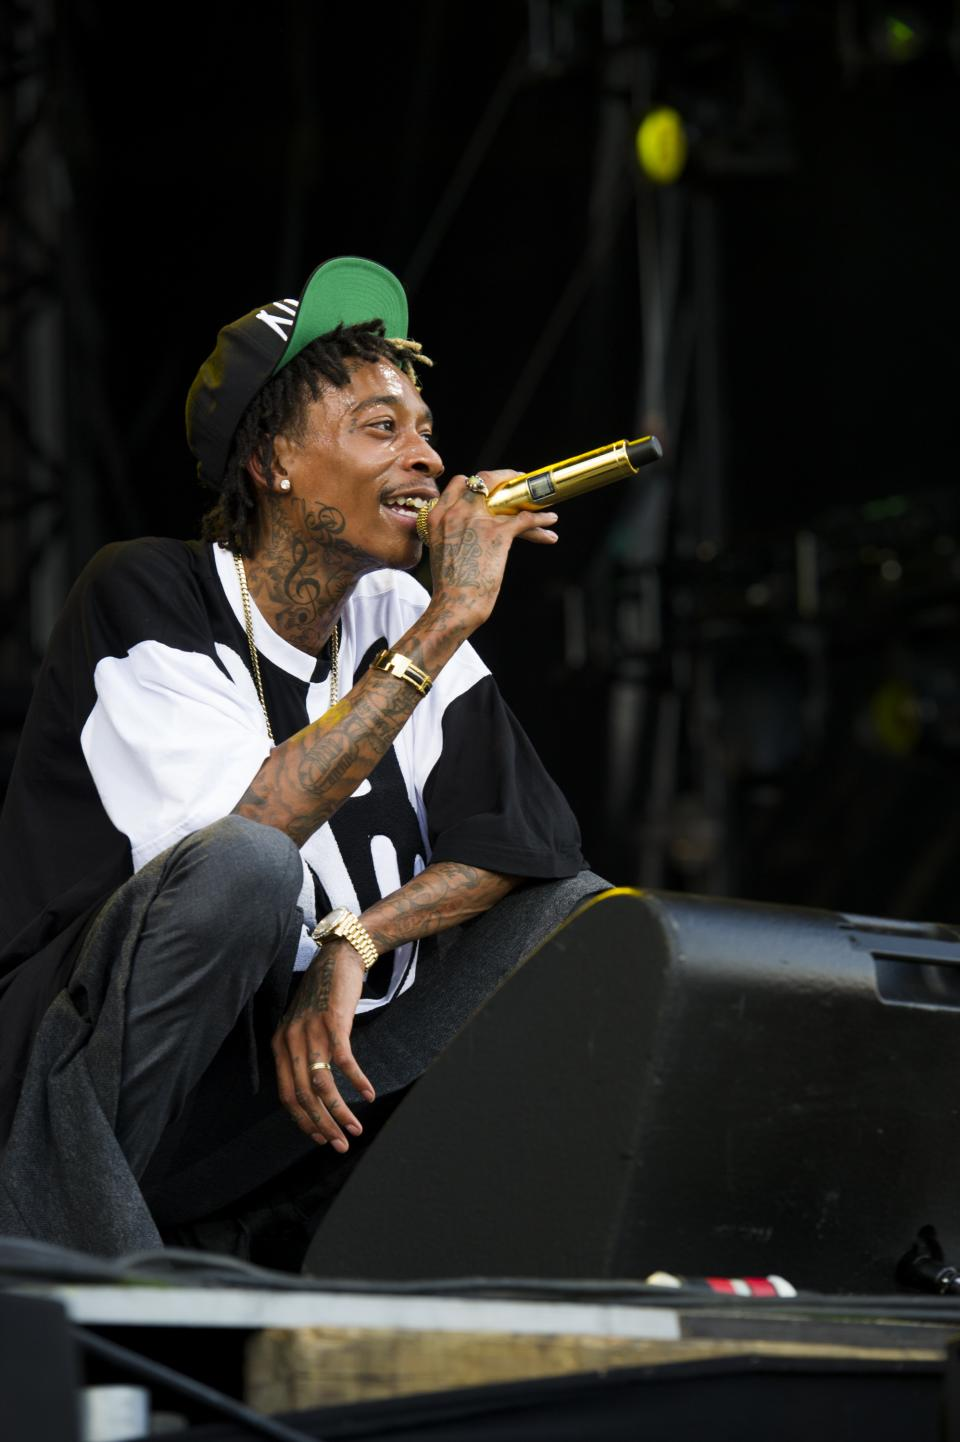 Wiz Khalifa performs on day two of the 2013 Budweiser Made in America festival on Sunday, Sept. 1, 2013 in Philadelphia. (Photo by Charles Sykes/Invision/AP)